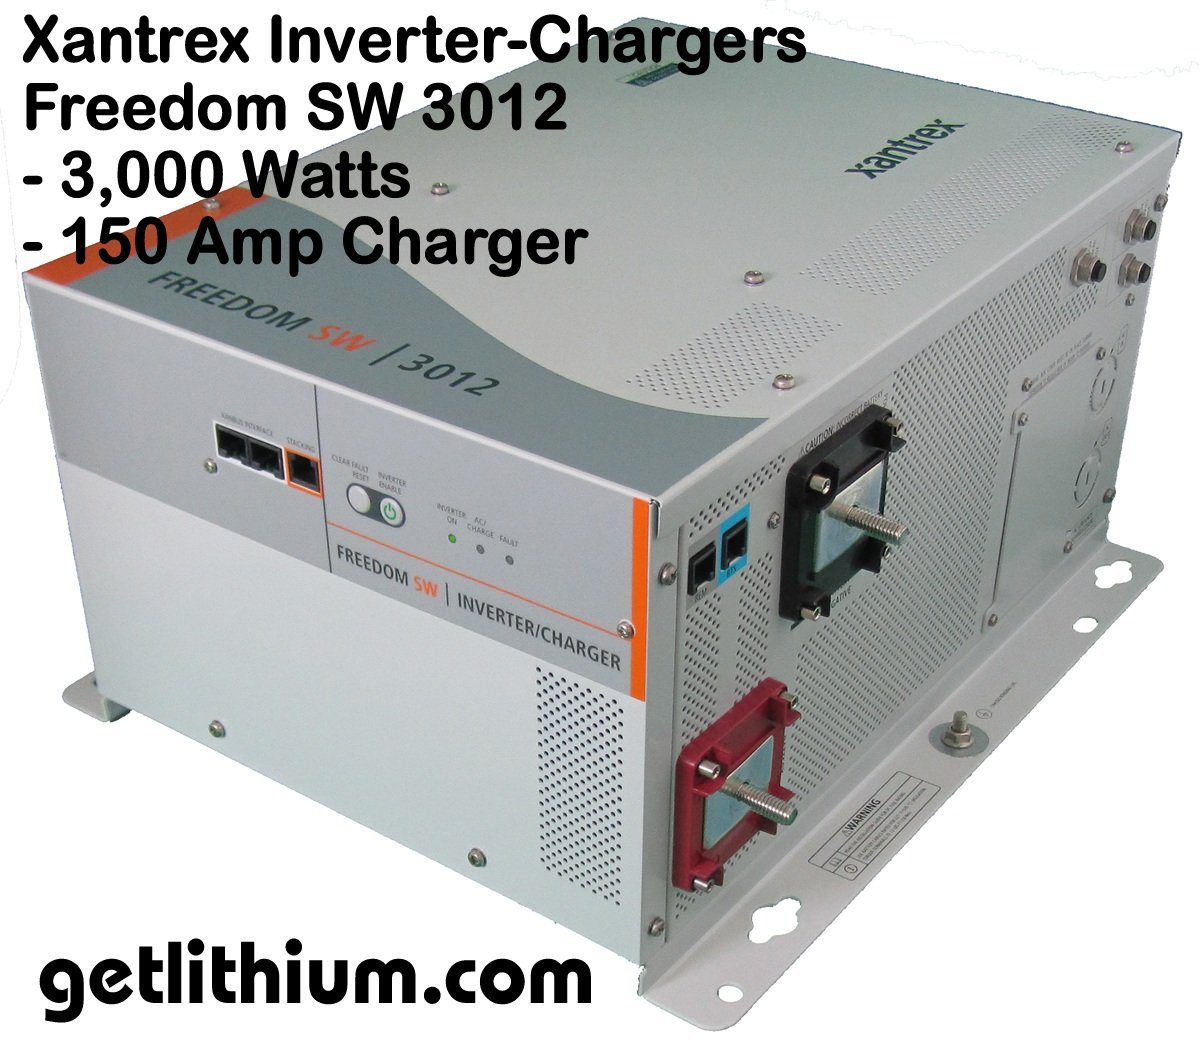 Xantrex inverter wiring diagram library